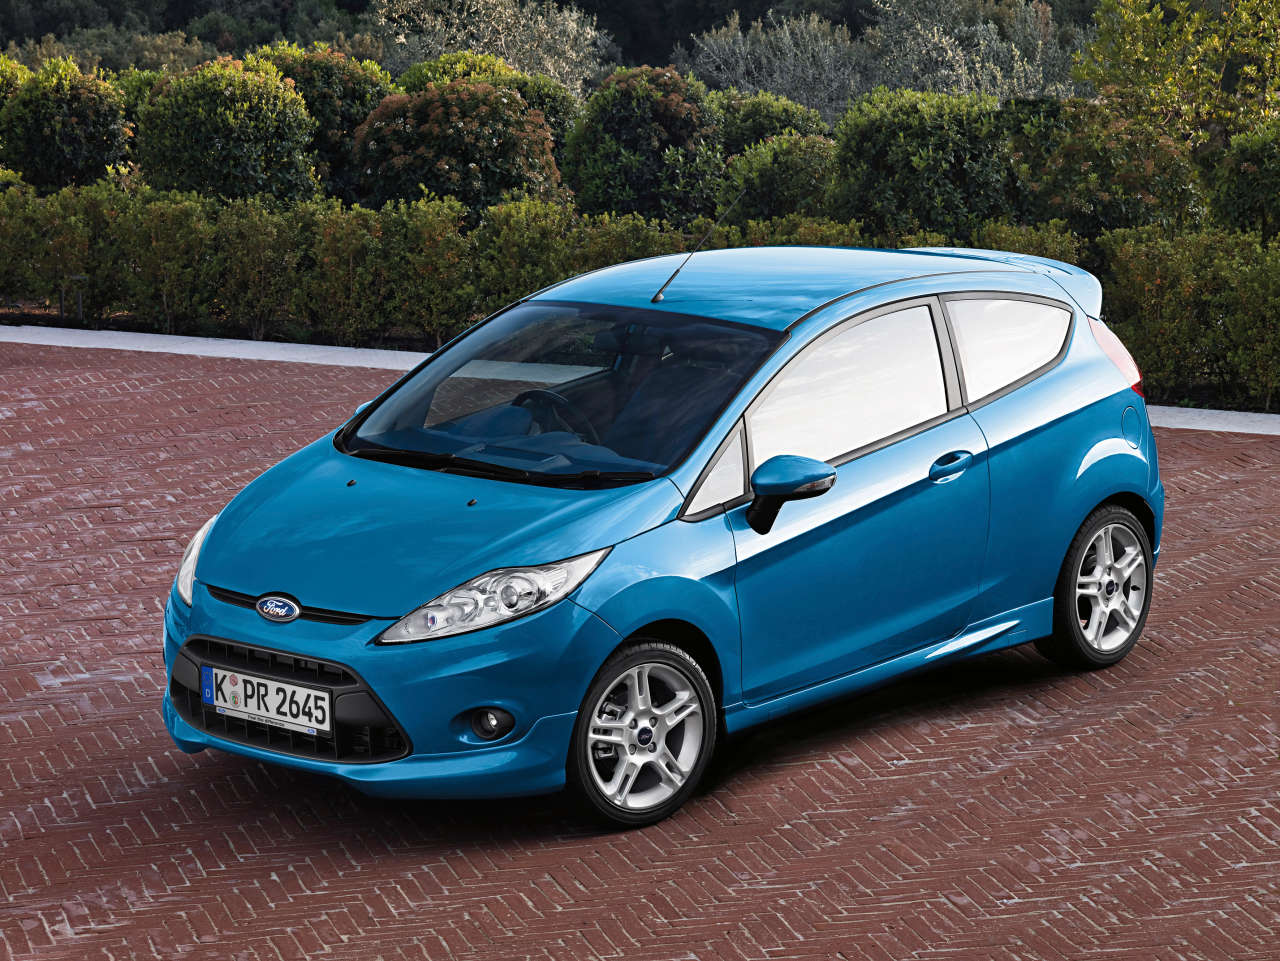 ford fiesta sport s technical details history photos on. Black Bedroom Furniture Sets. Home Design Ideas